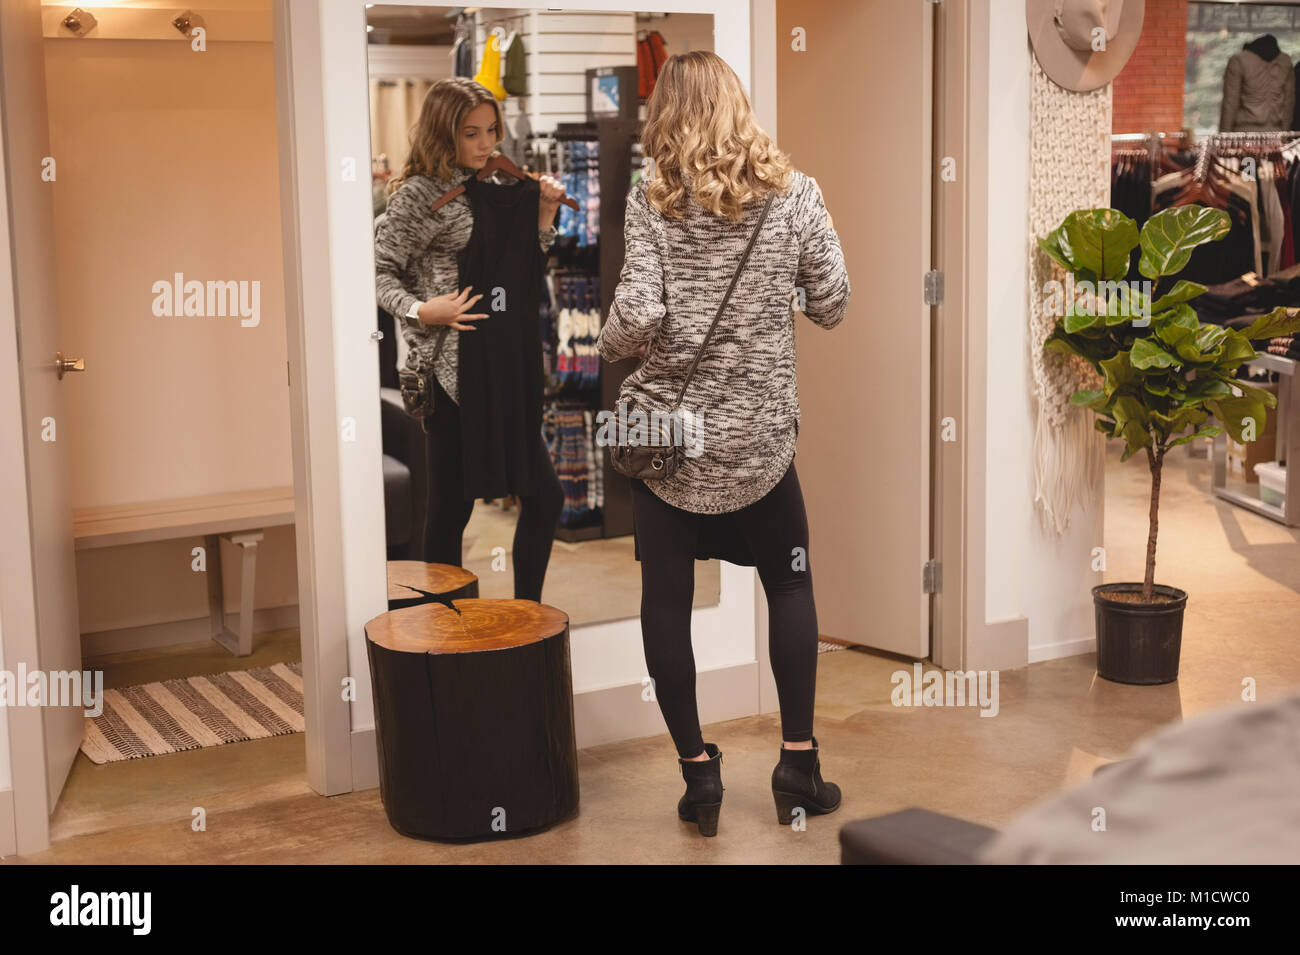 Rear view of woman checking out dress Photo Stock